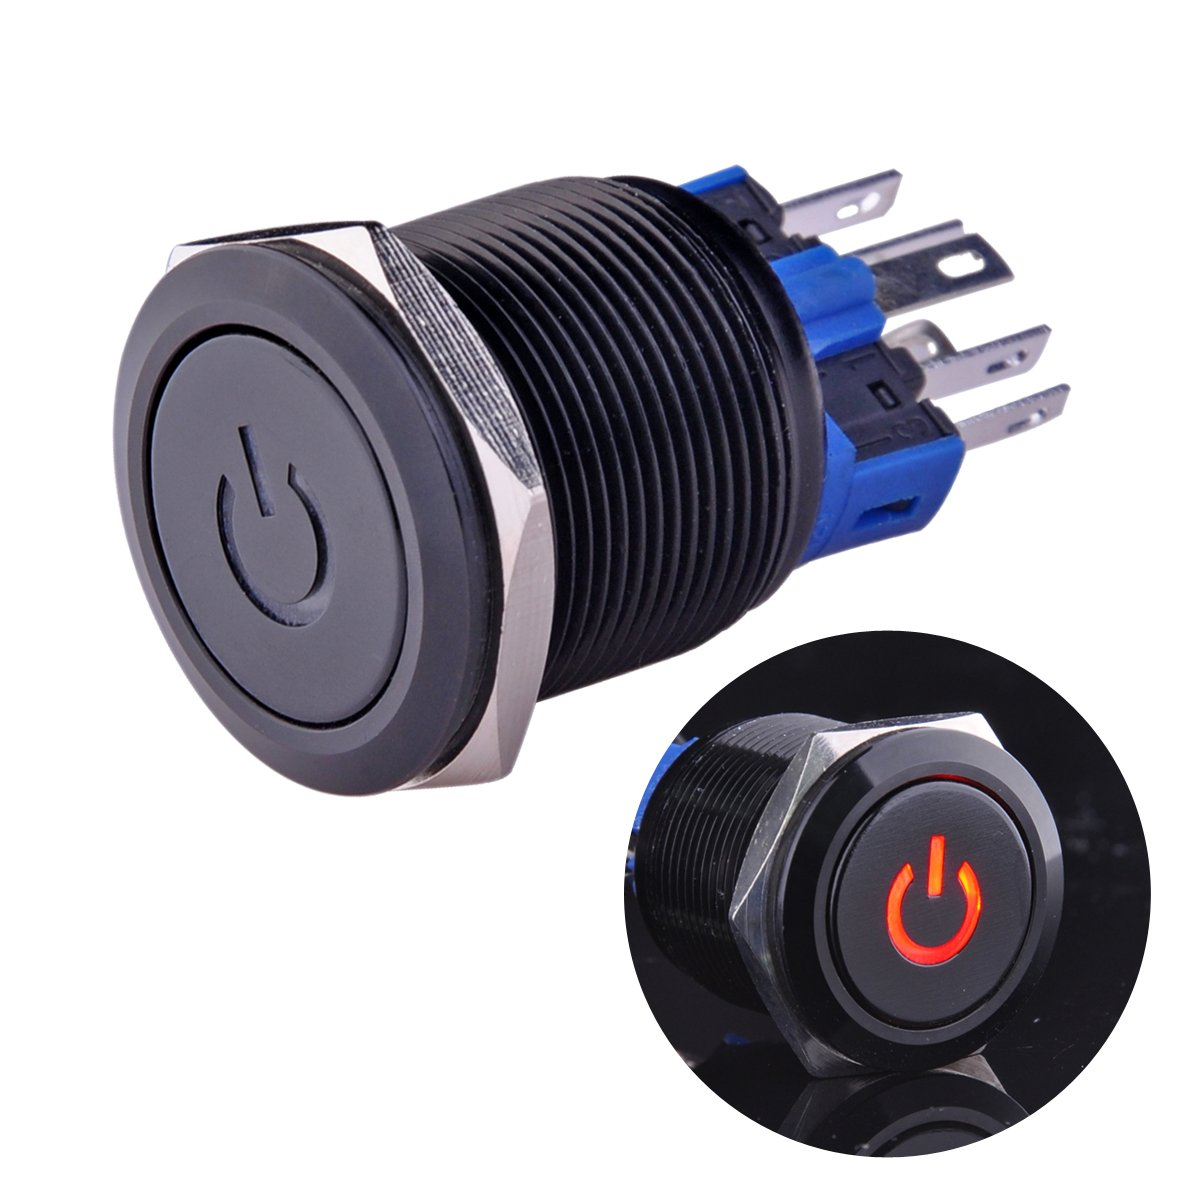 Best Rated In Pushbutton Switches Helpful Customer Reviews How To Wire Push Button Switch 8 A Ulincos Latching U22a4 1no1nc Spdt On Off Black Metal Shell With Red Led